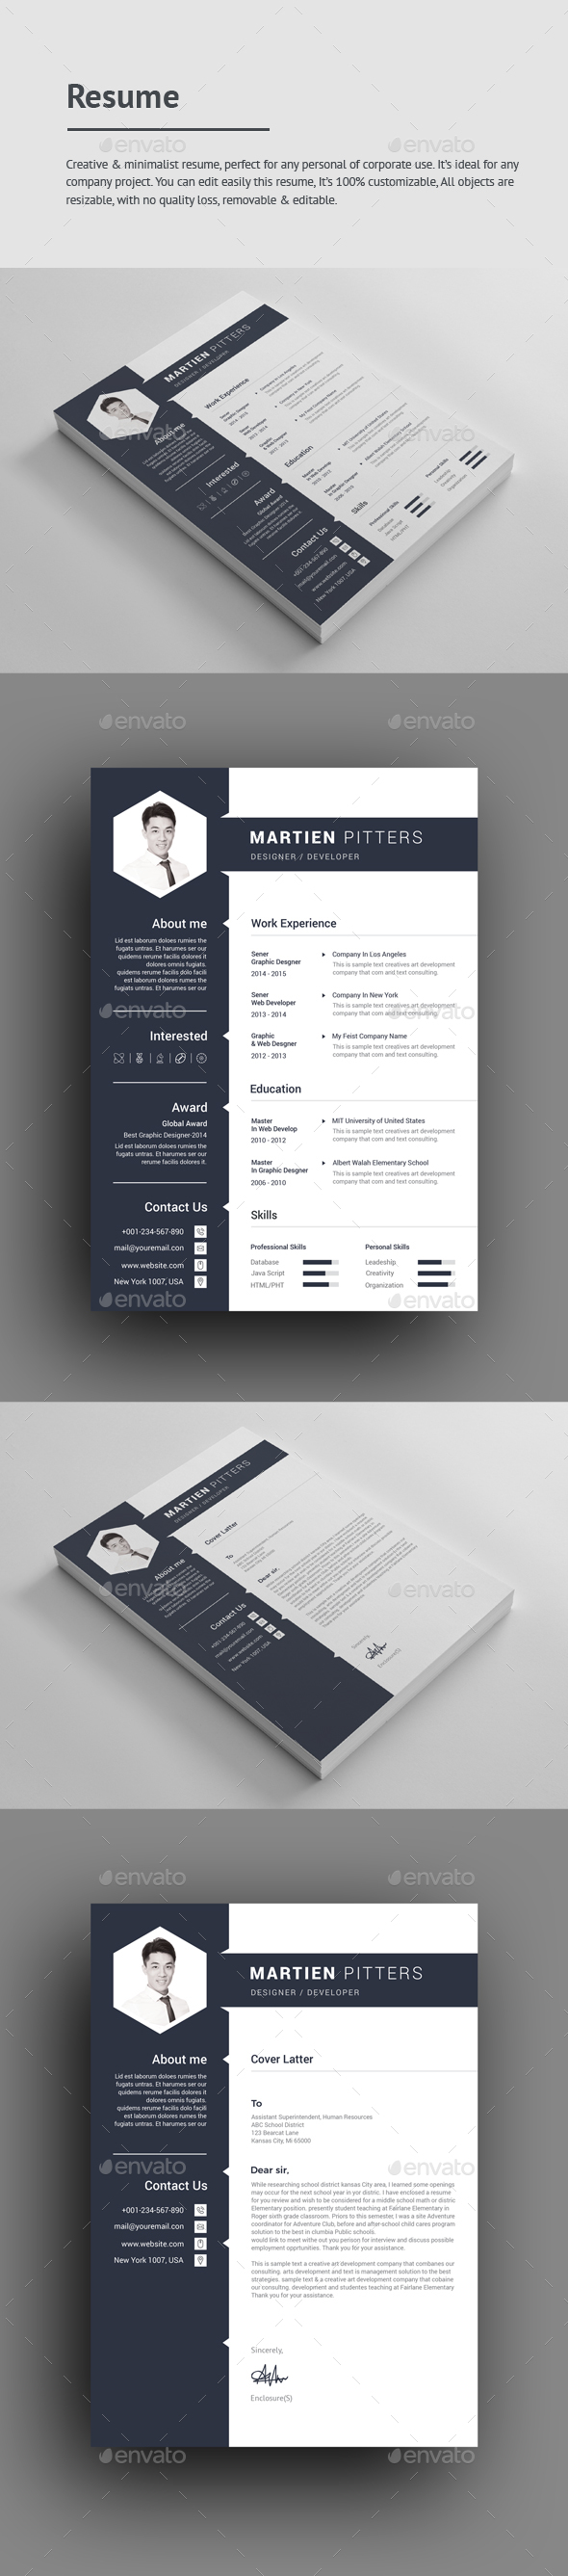 Engineering Resume Template Excel Resume Templates From Graphicriver Artist Resume Templates Pdf with Upload A Resume  Resume Statement Of Purpose